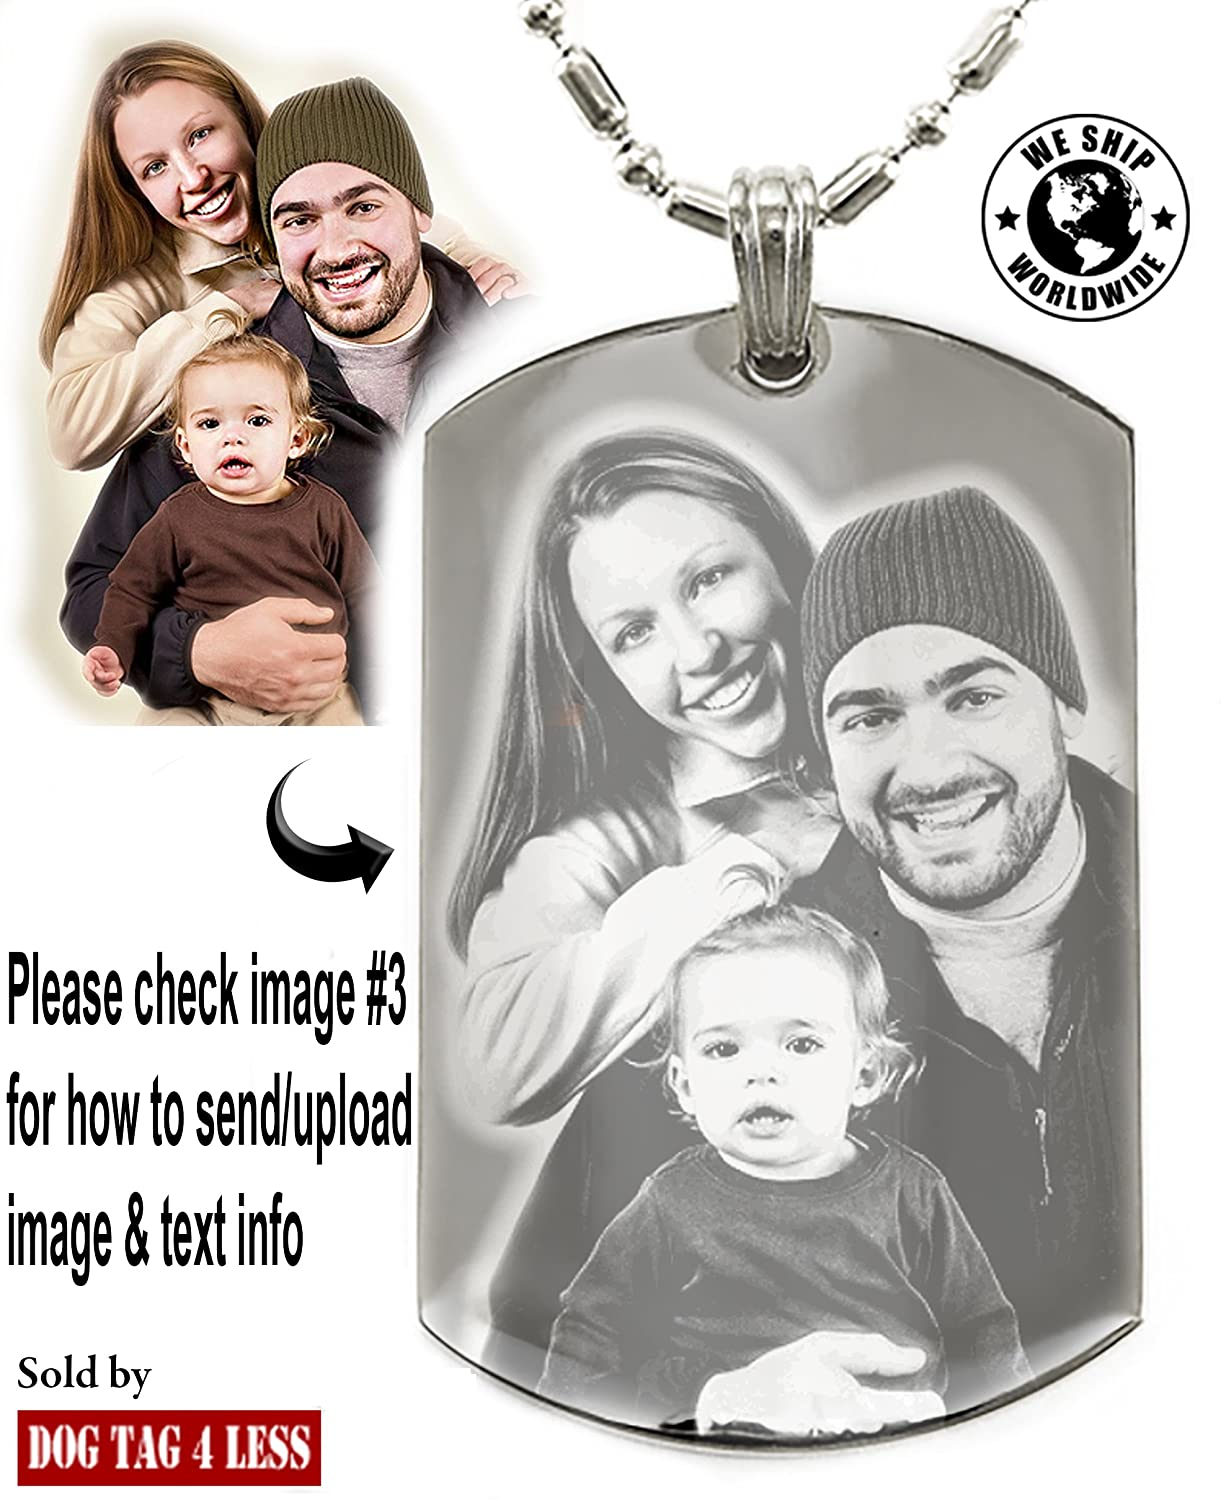 Amazon personalized photo text dogtags custom your picture text amazon personalized photo text dogtags custom your picture text necklace pendant free engraving valentines mothers fathers day gift other aloadofball Images